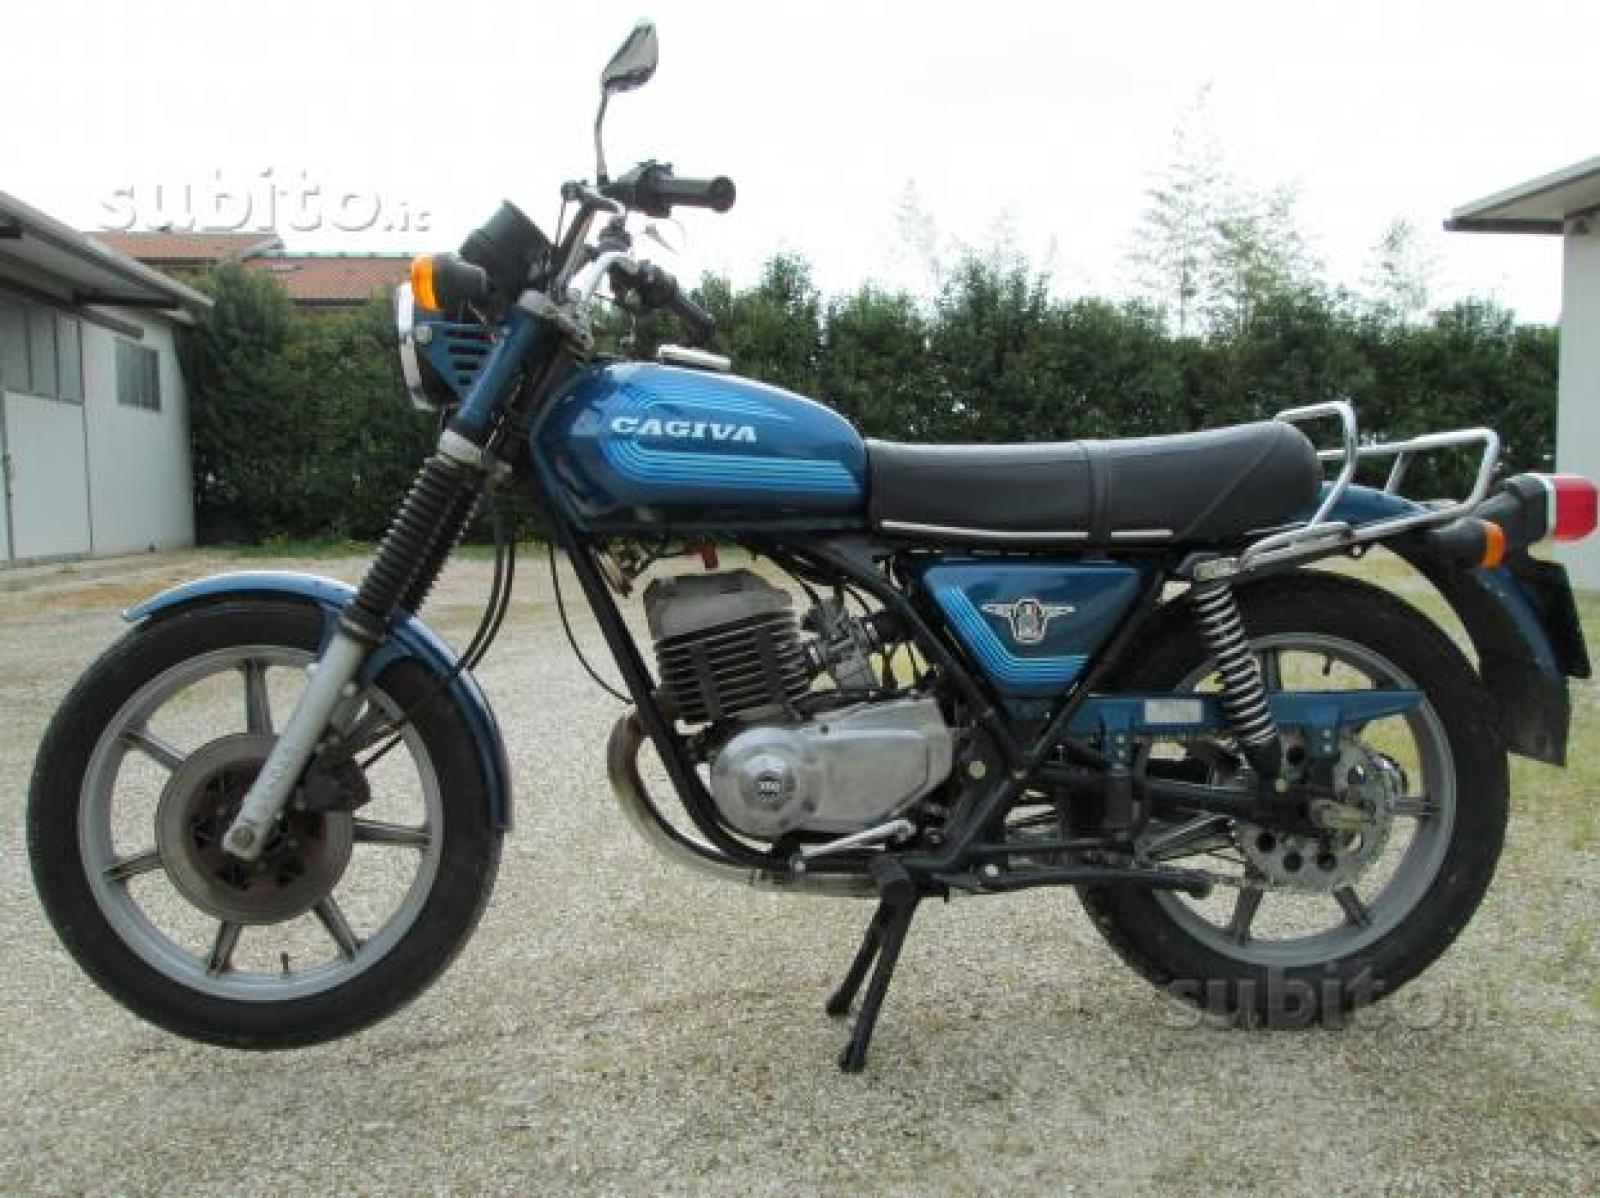 Cagiva SST 350 Chopper 1981 images #68448